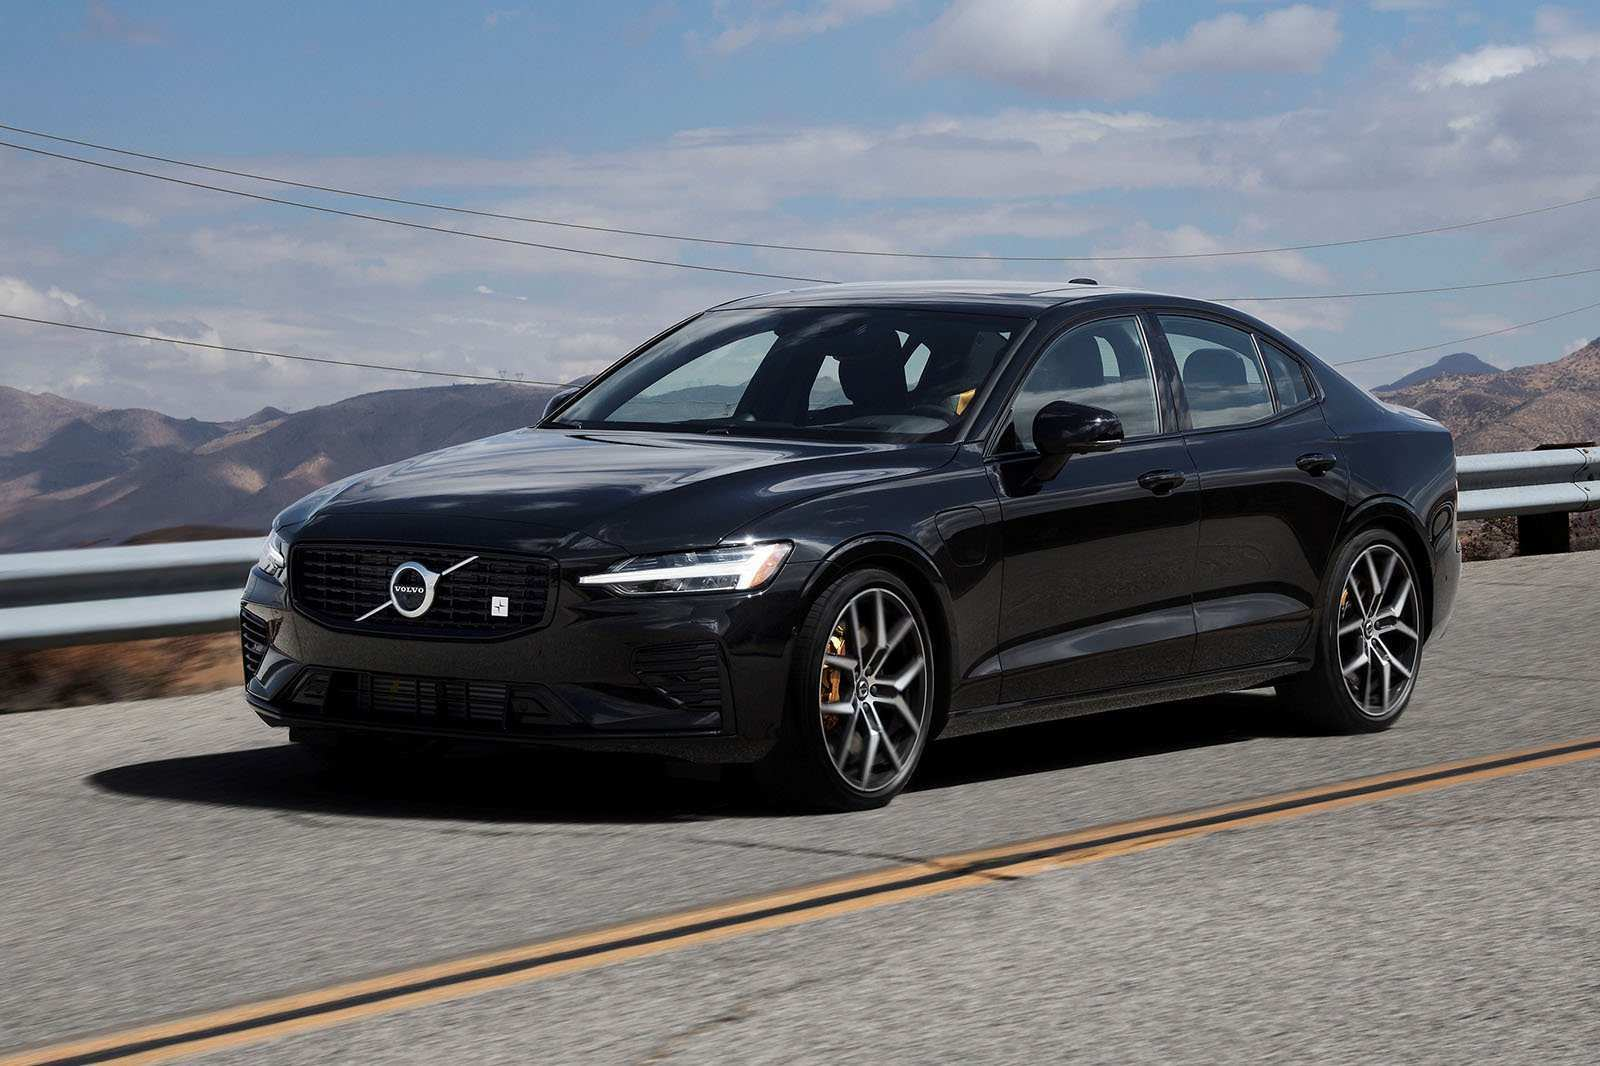 46 Great New Volvo New S60 2019 Release Date And Specs Release Date for New Volvo New S60 2019 Release Date And Specs